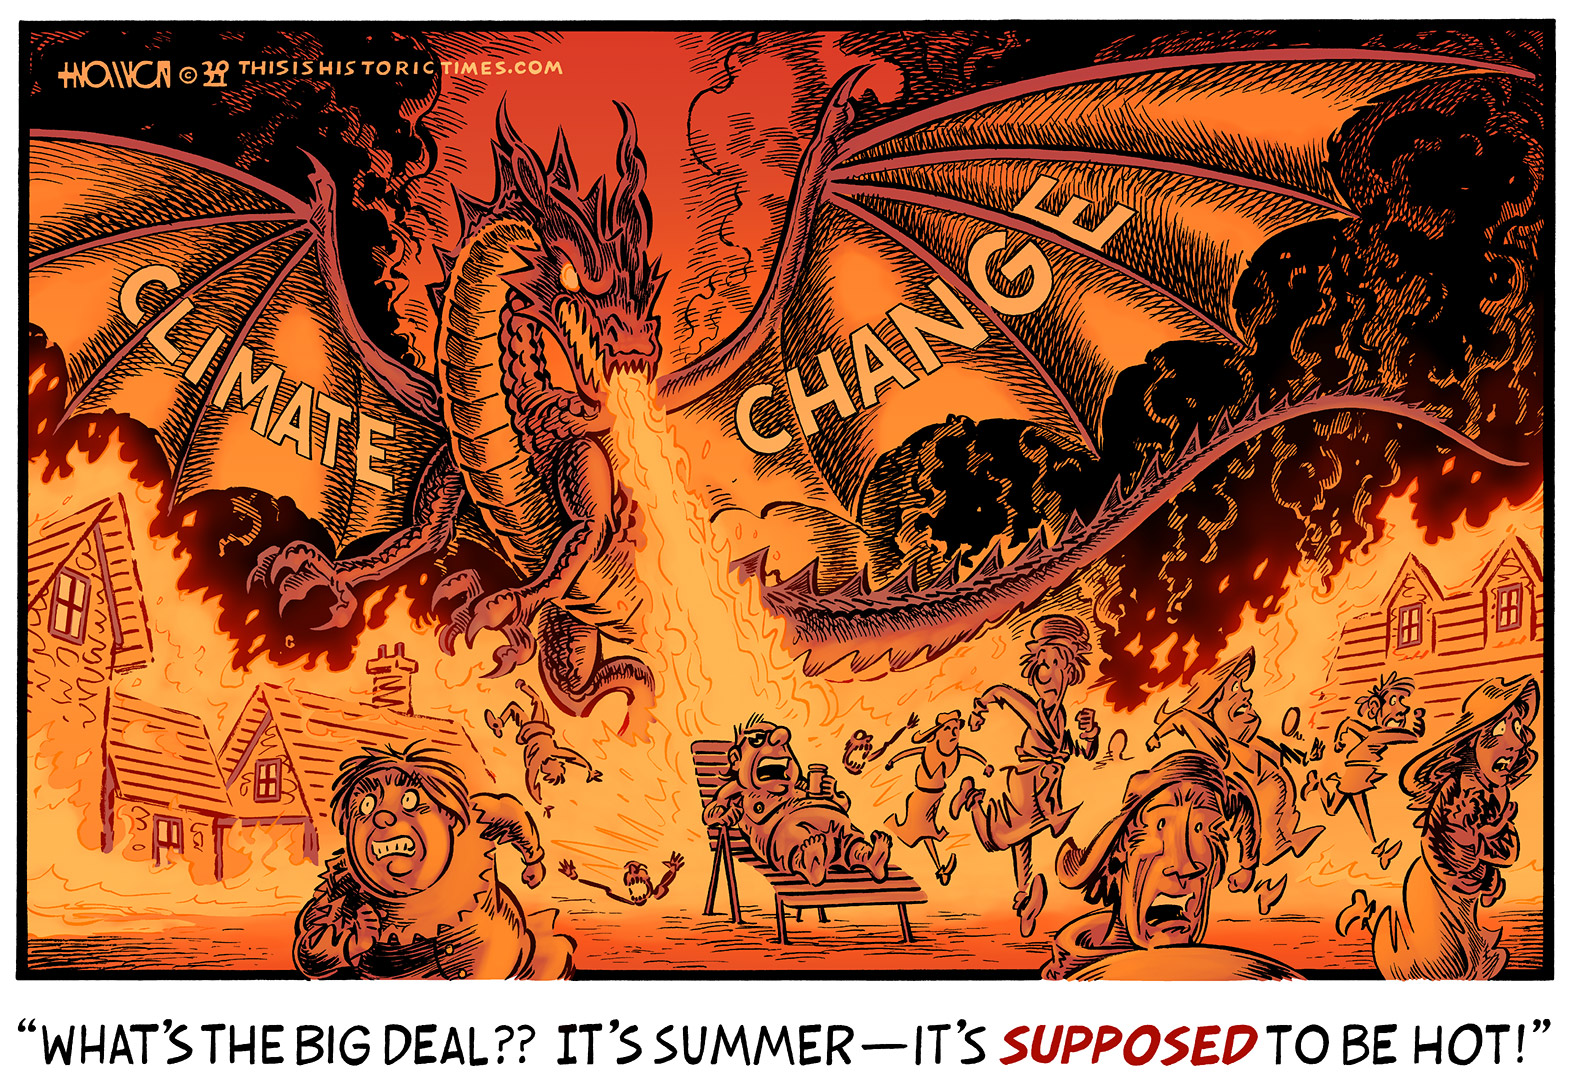 Dragon representing climate change burns down a medieval village while some idiot reclining on a lawn chair pretends it's perfectly normal.